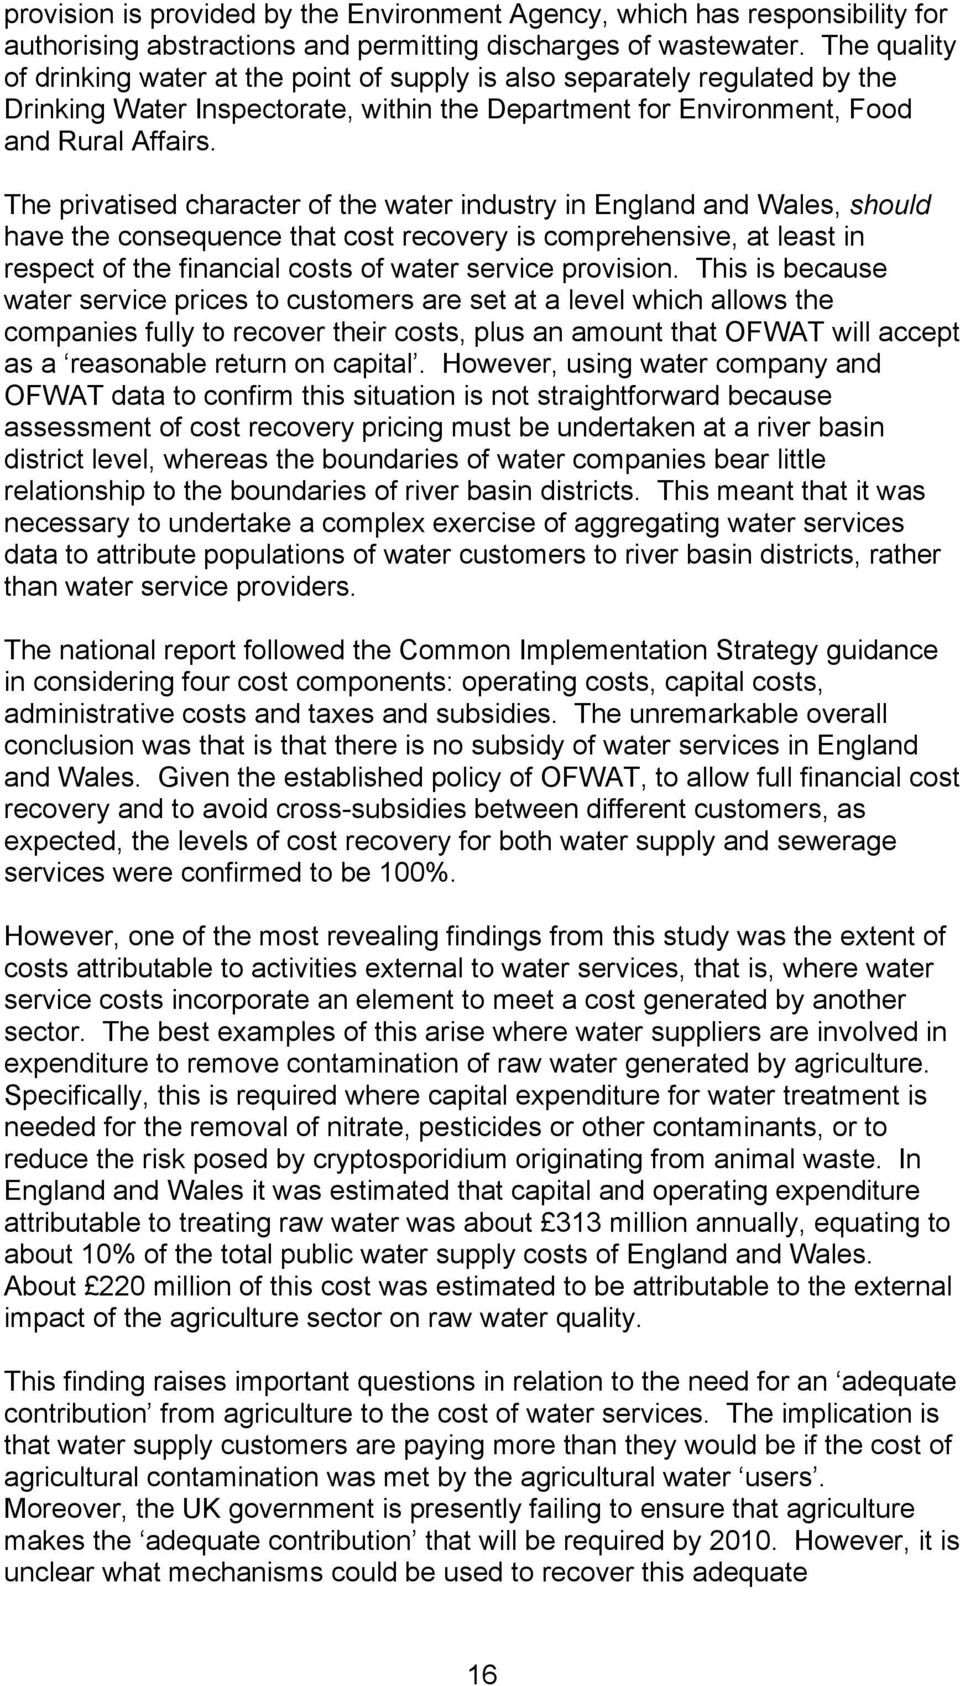 The privatised character of the water industry in England and Wales, should have the consequence that cost recovery is comprehensive, at least in respect of the financial costs of water service